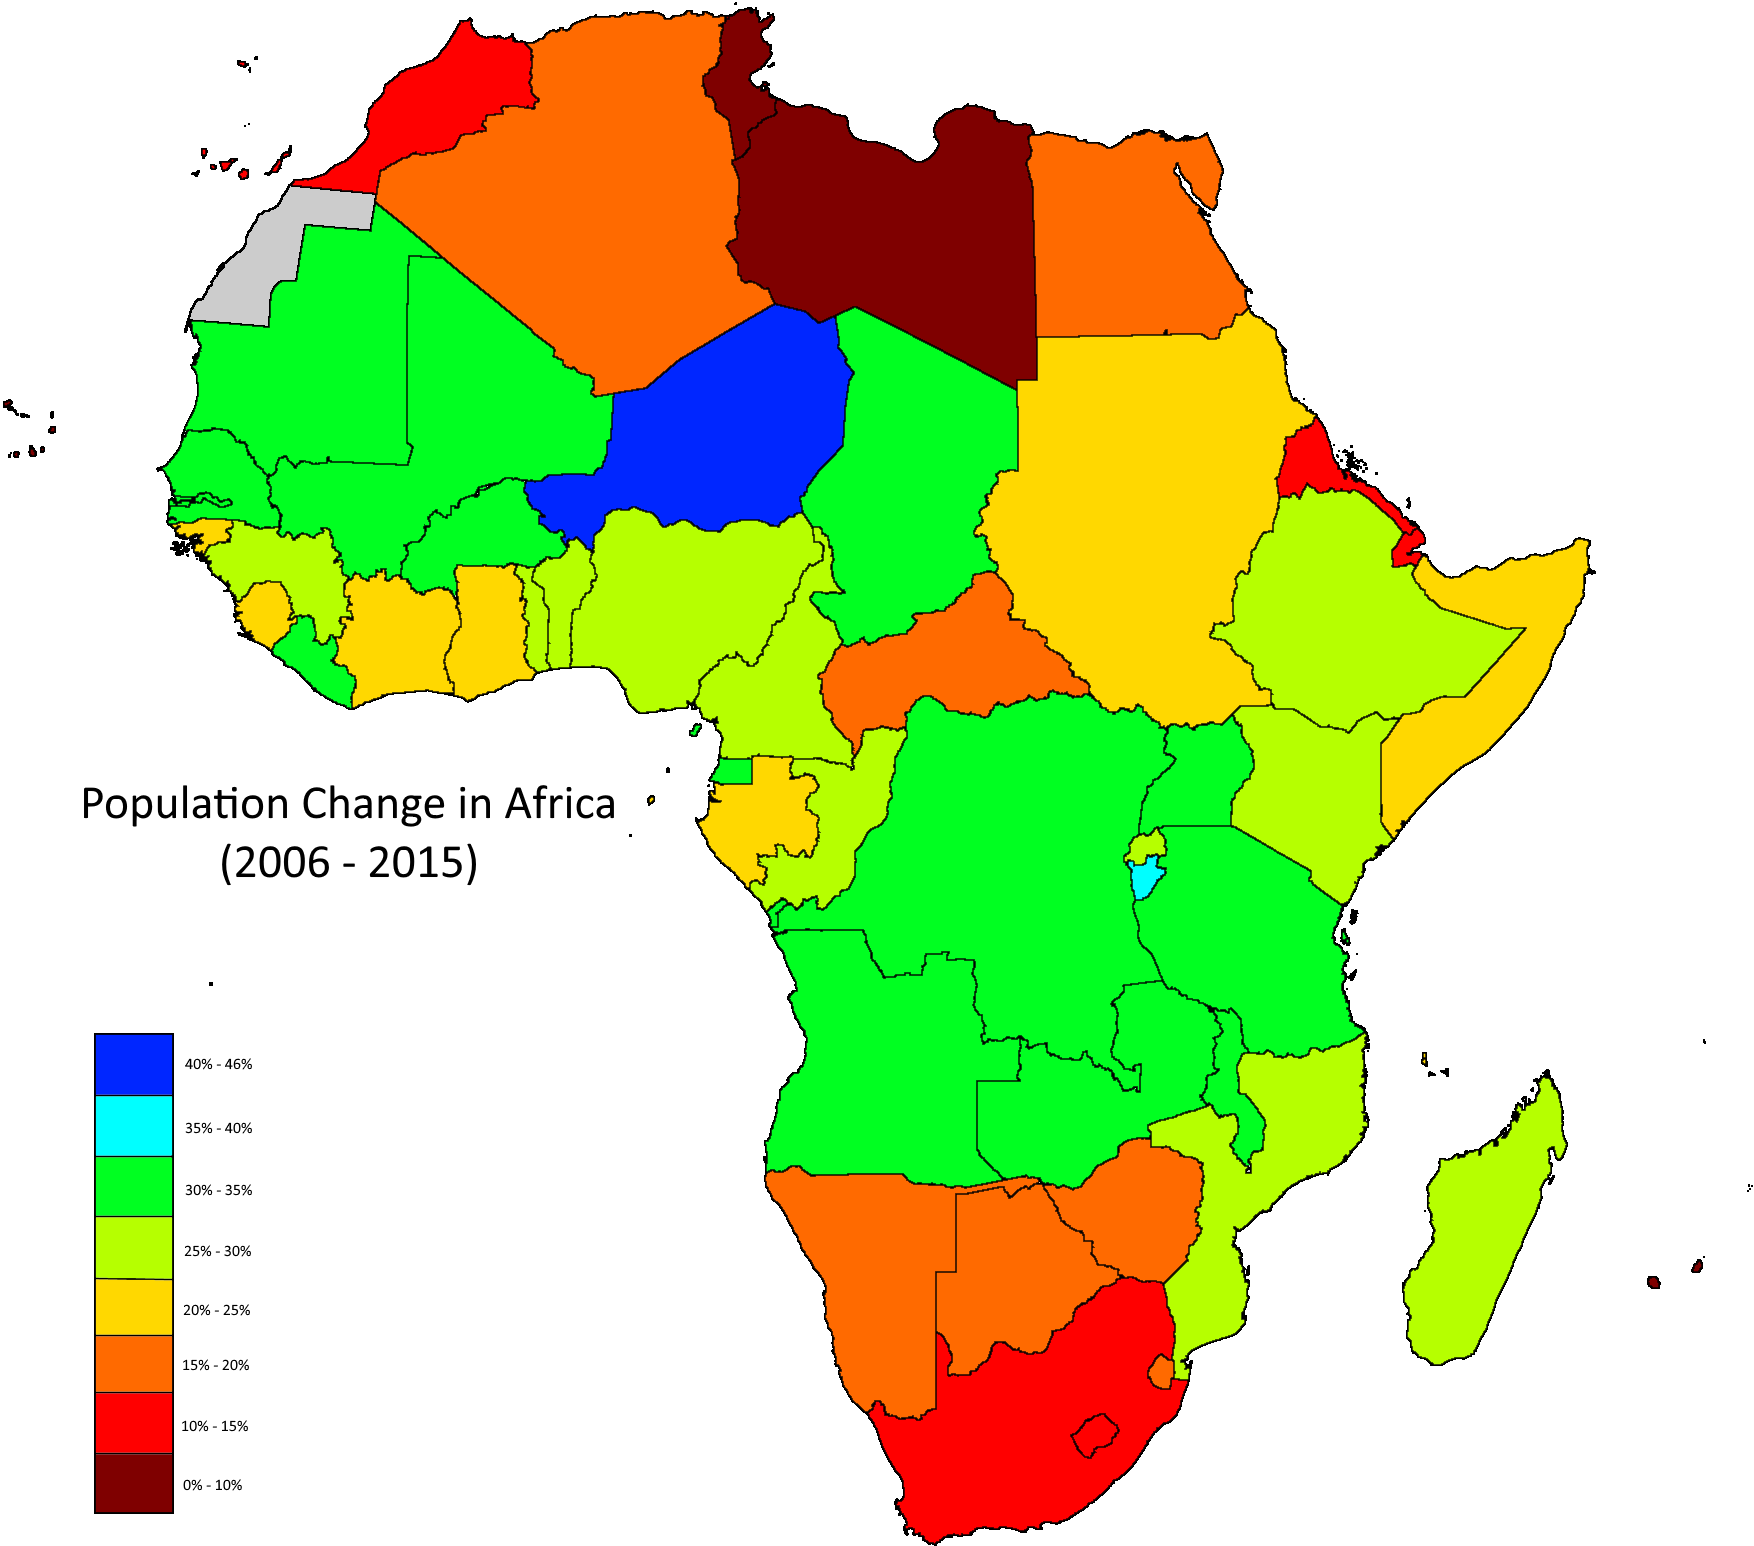 Population change in Africa from 2006 to 2015 | Alkebulan(Afrikan